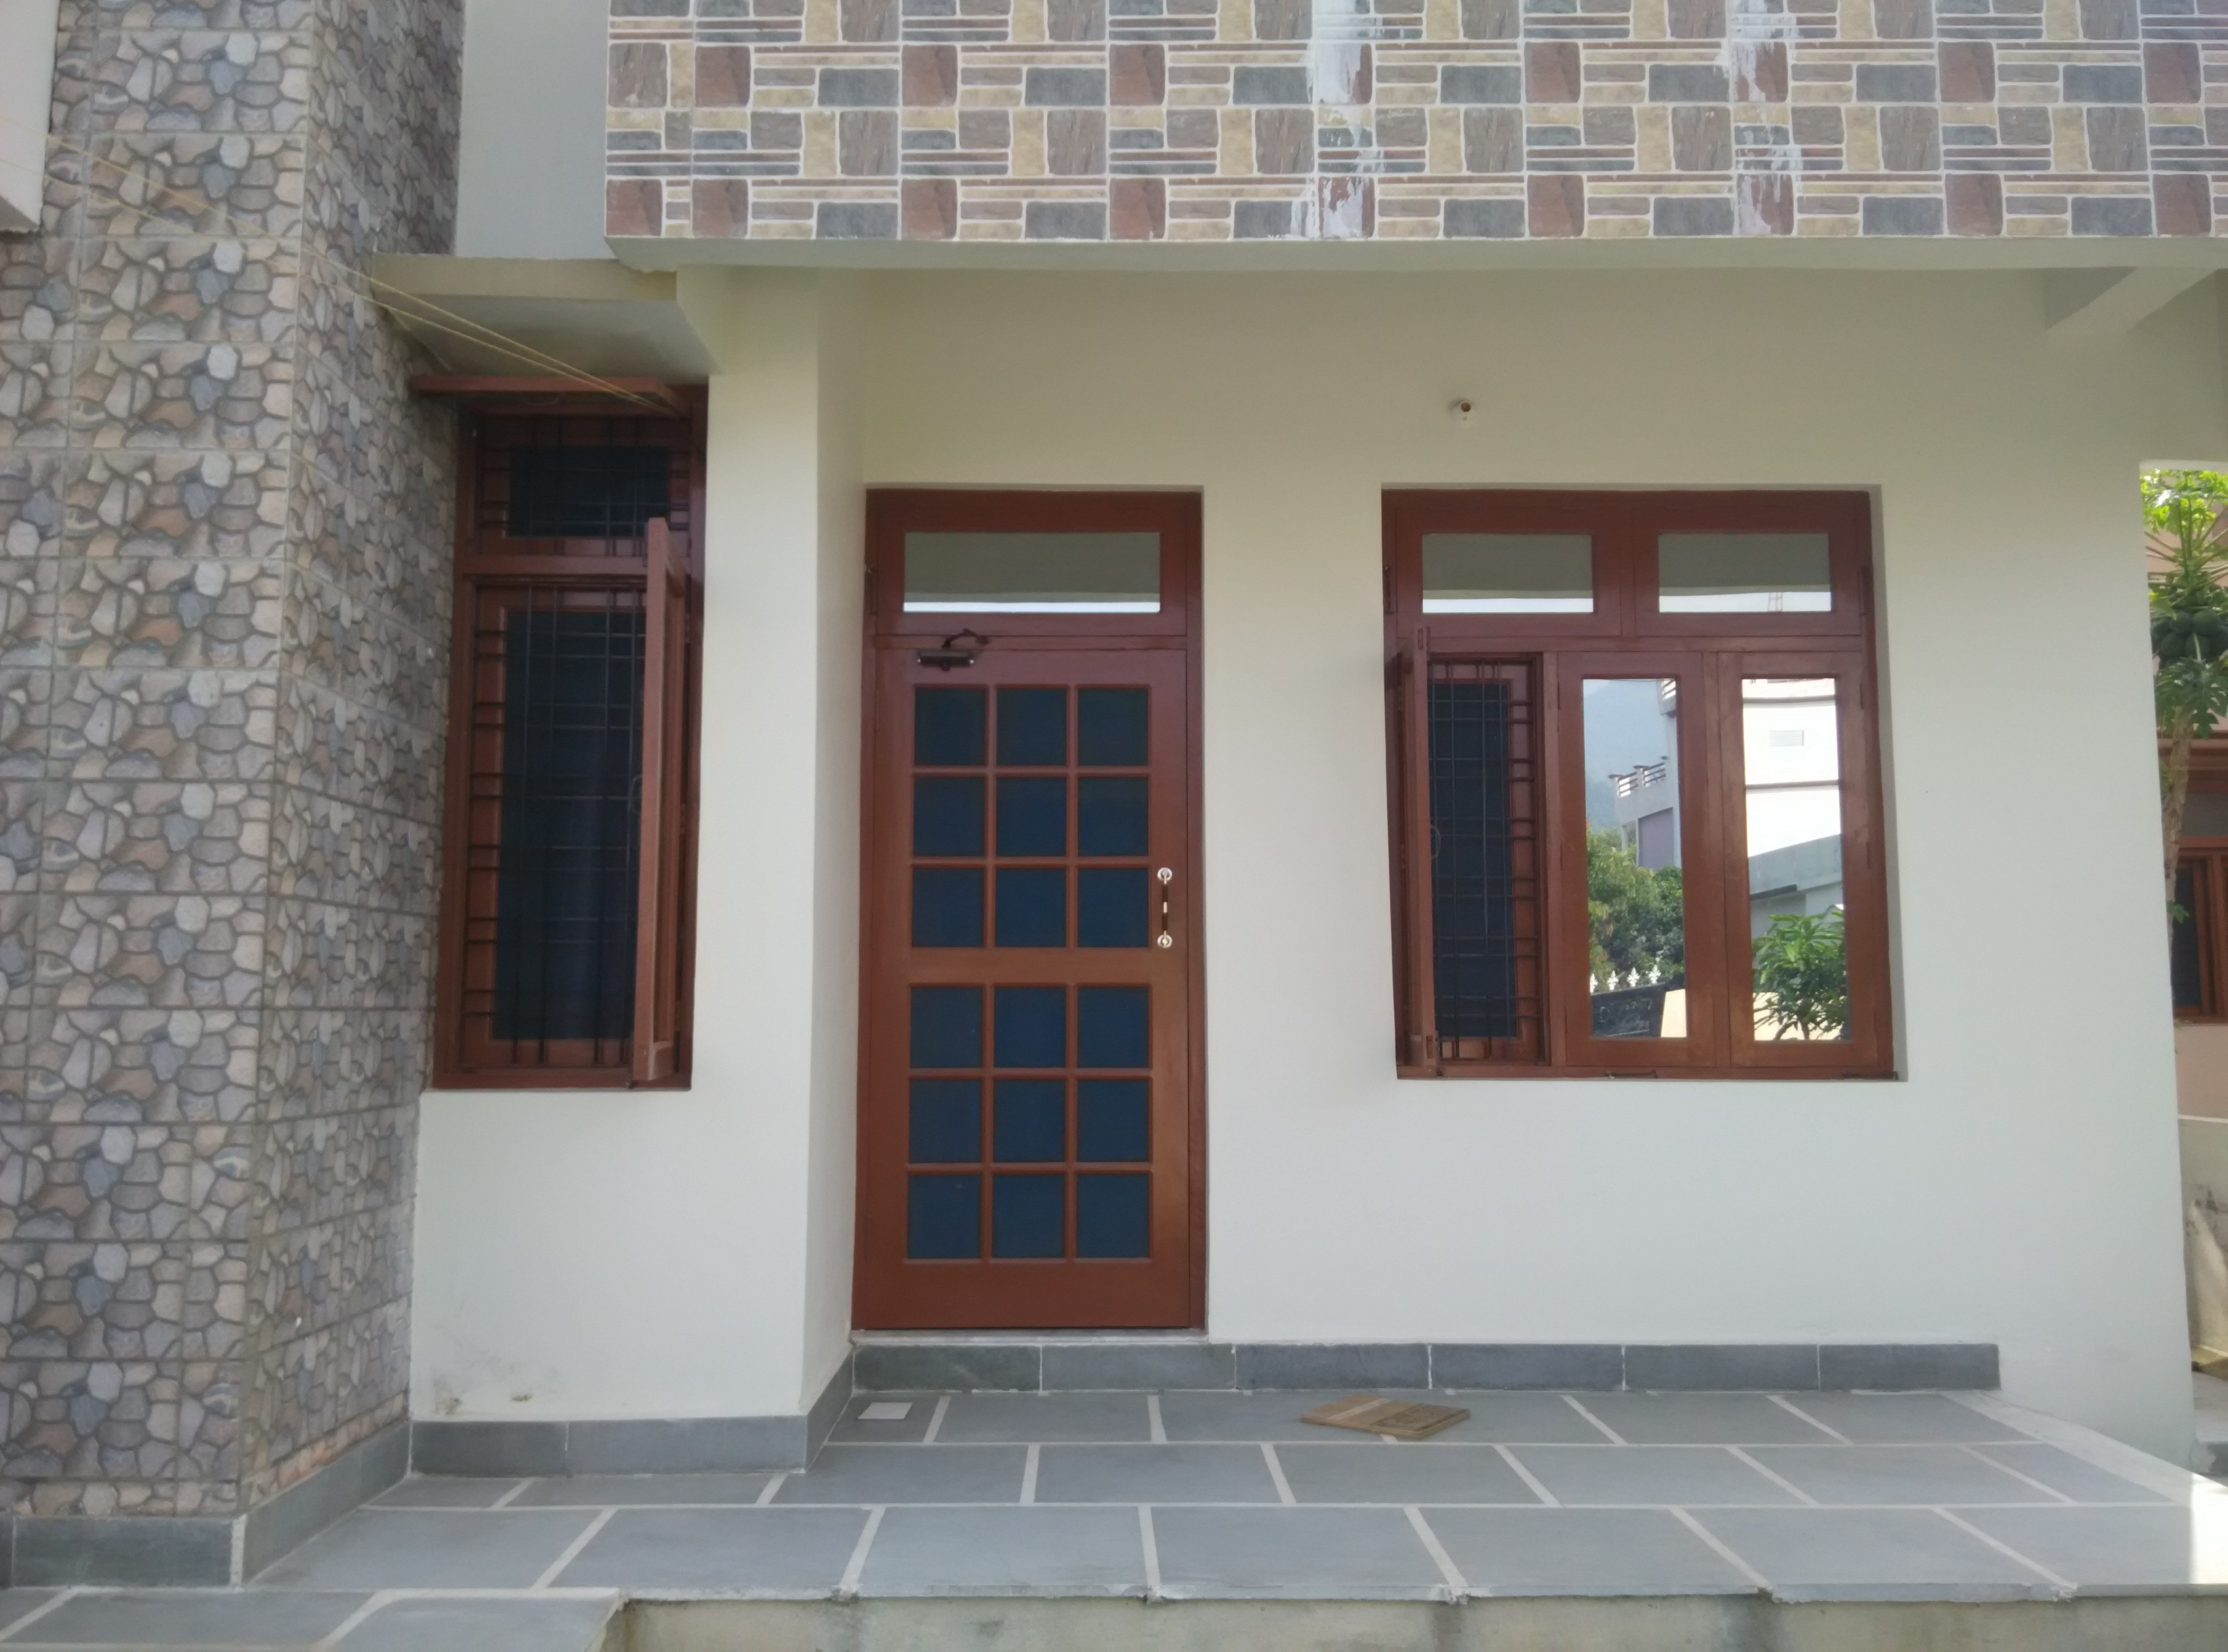 1BHK, Small apartment, Studio apartment, Affordable homes, compact home, Demand for smaller homes, Demand for 1BHK, India real estate news, Indian property market news, Investment into smaller homes, Track2Media Research, Track2Realty